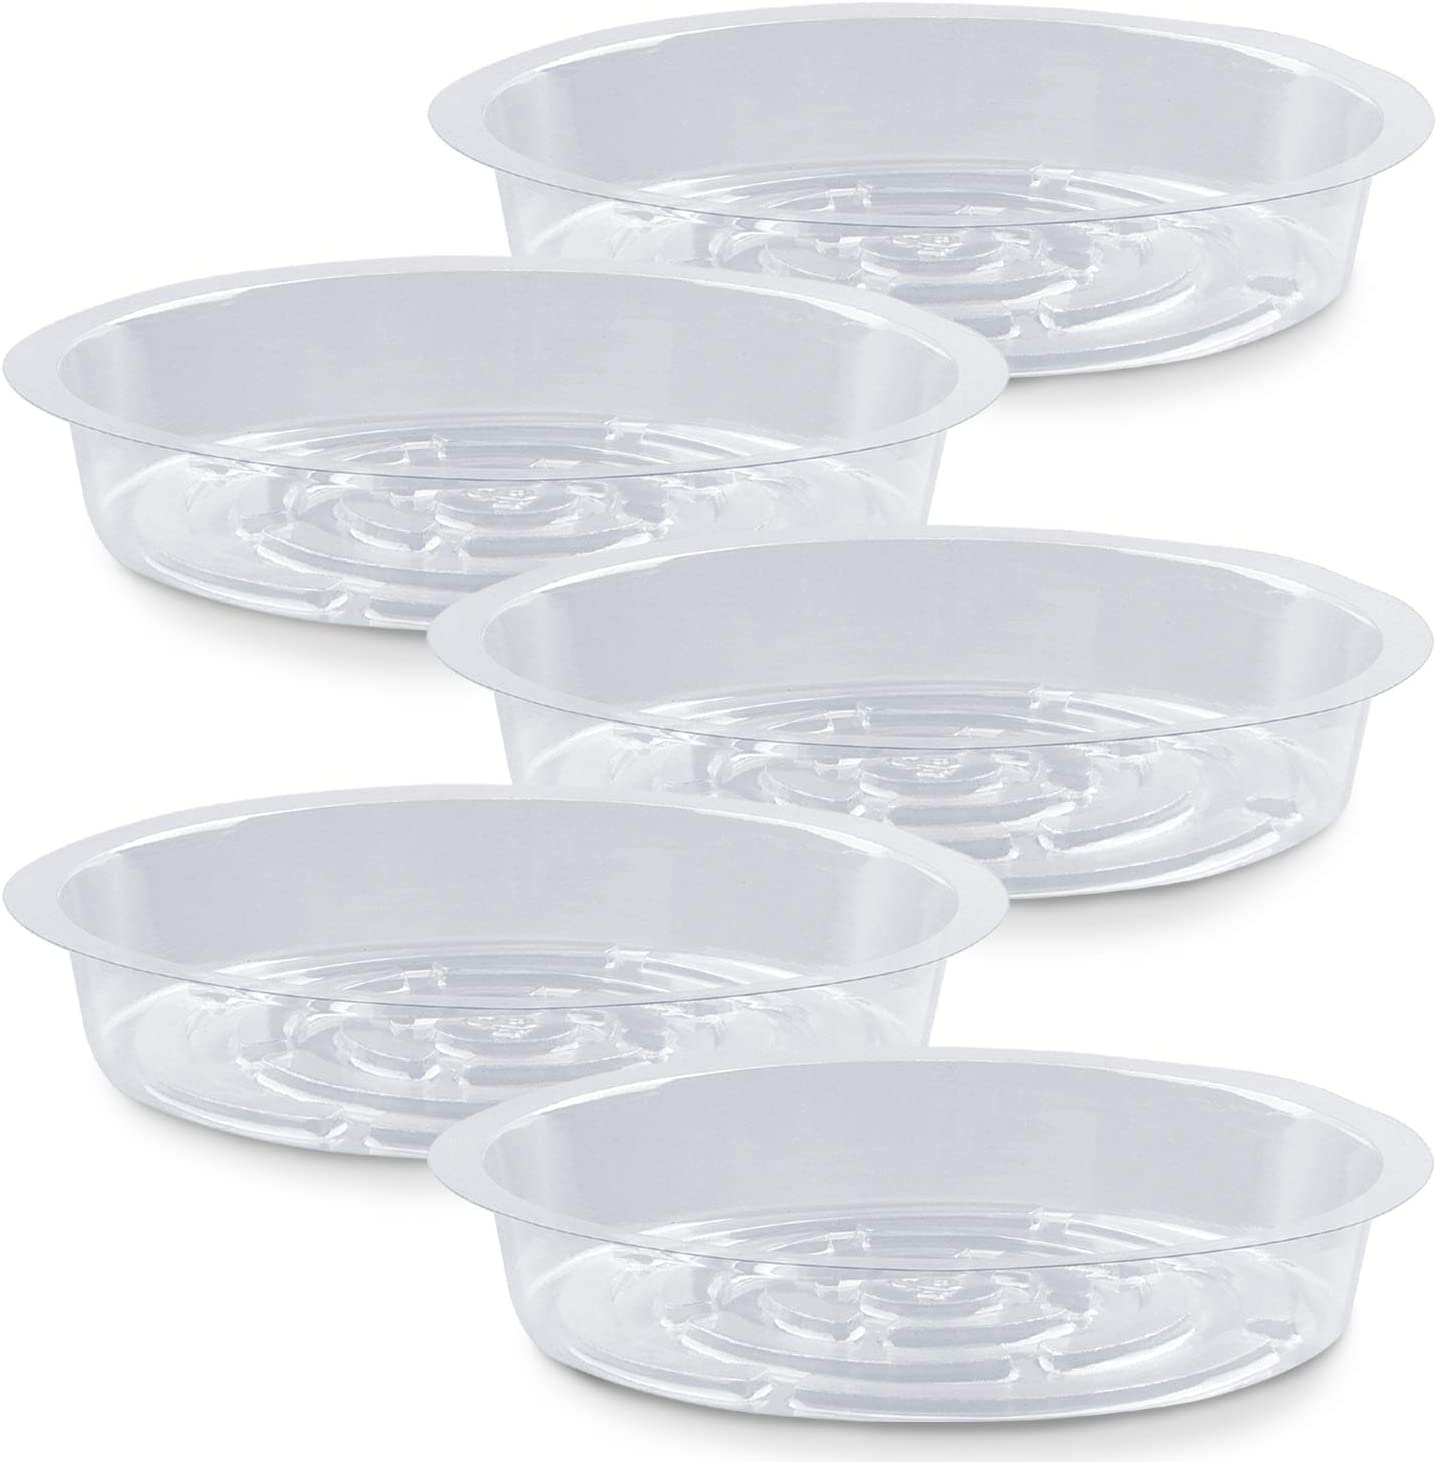 Plant Saucer,5 Pack Heavy Duty Plastic Plant Saucer Drip Trays Small Plant Plate Dish,Heavy Duty Clear Plastic Plant Saucers Flower Pot Tray Flower Pot Drip Pan for Indoor and Outdoor Plants (6 Inch)